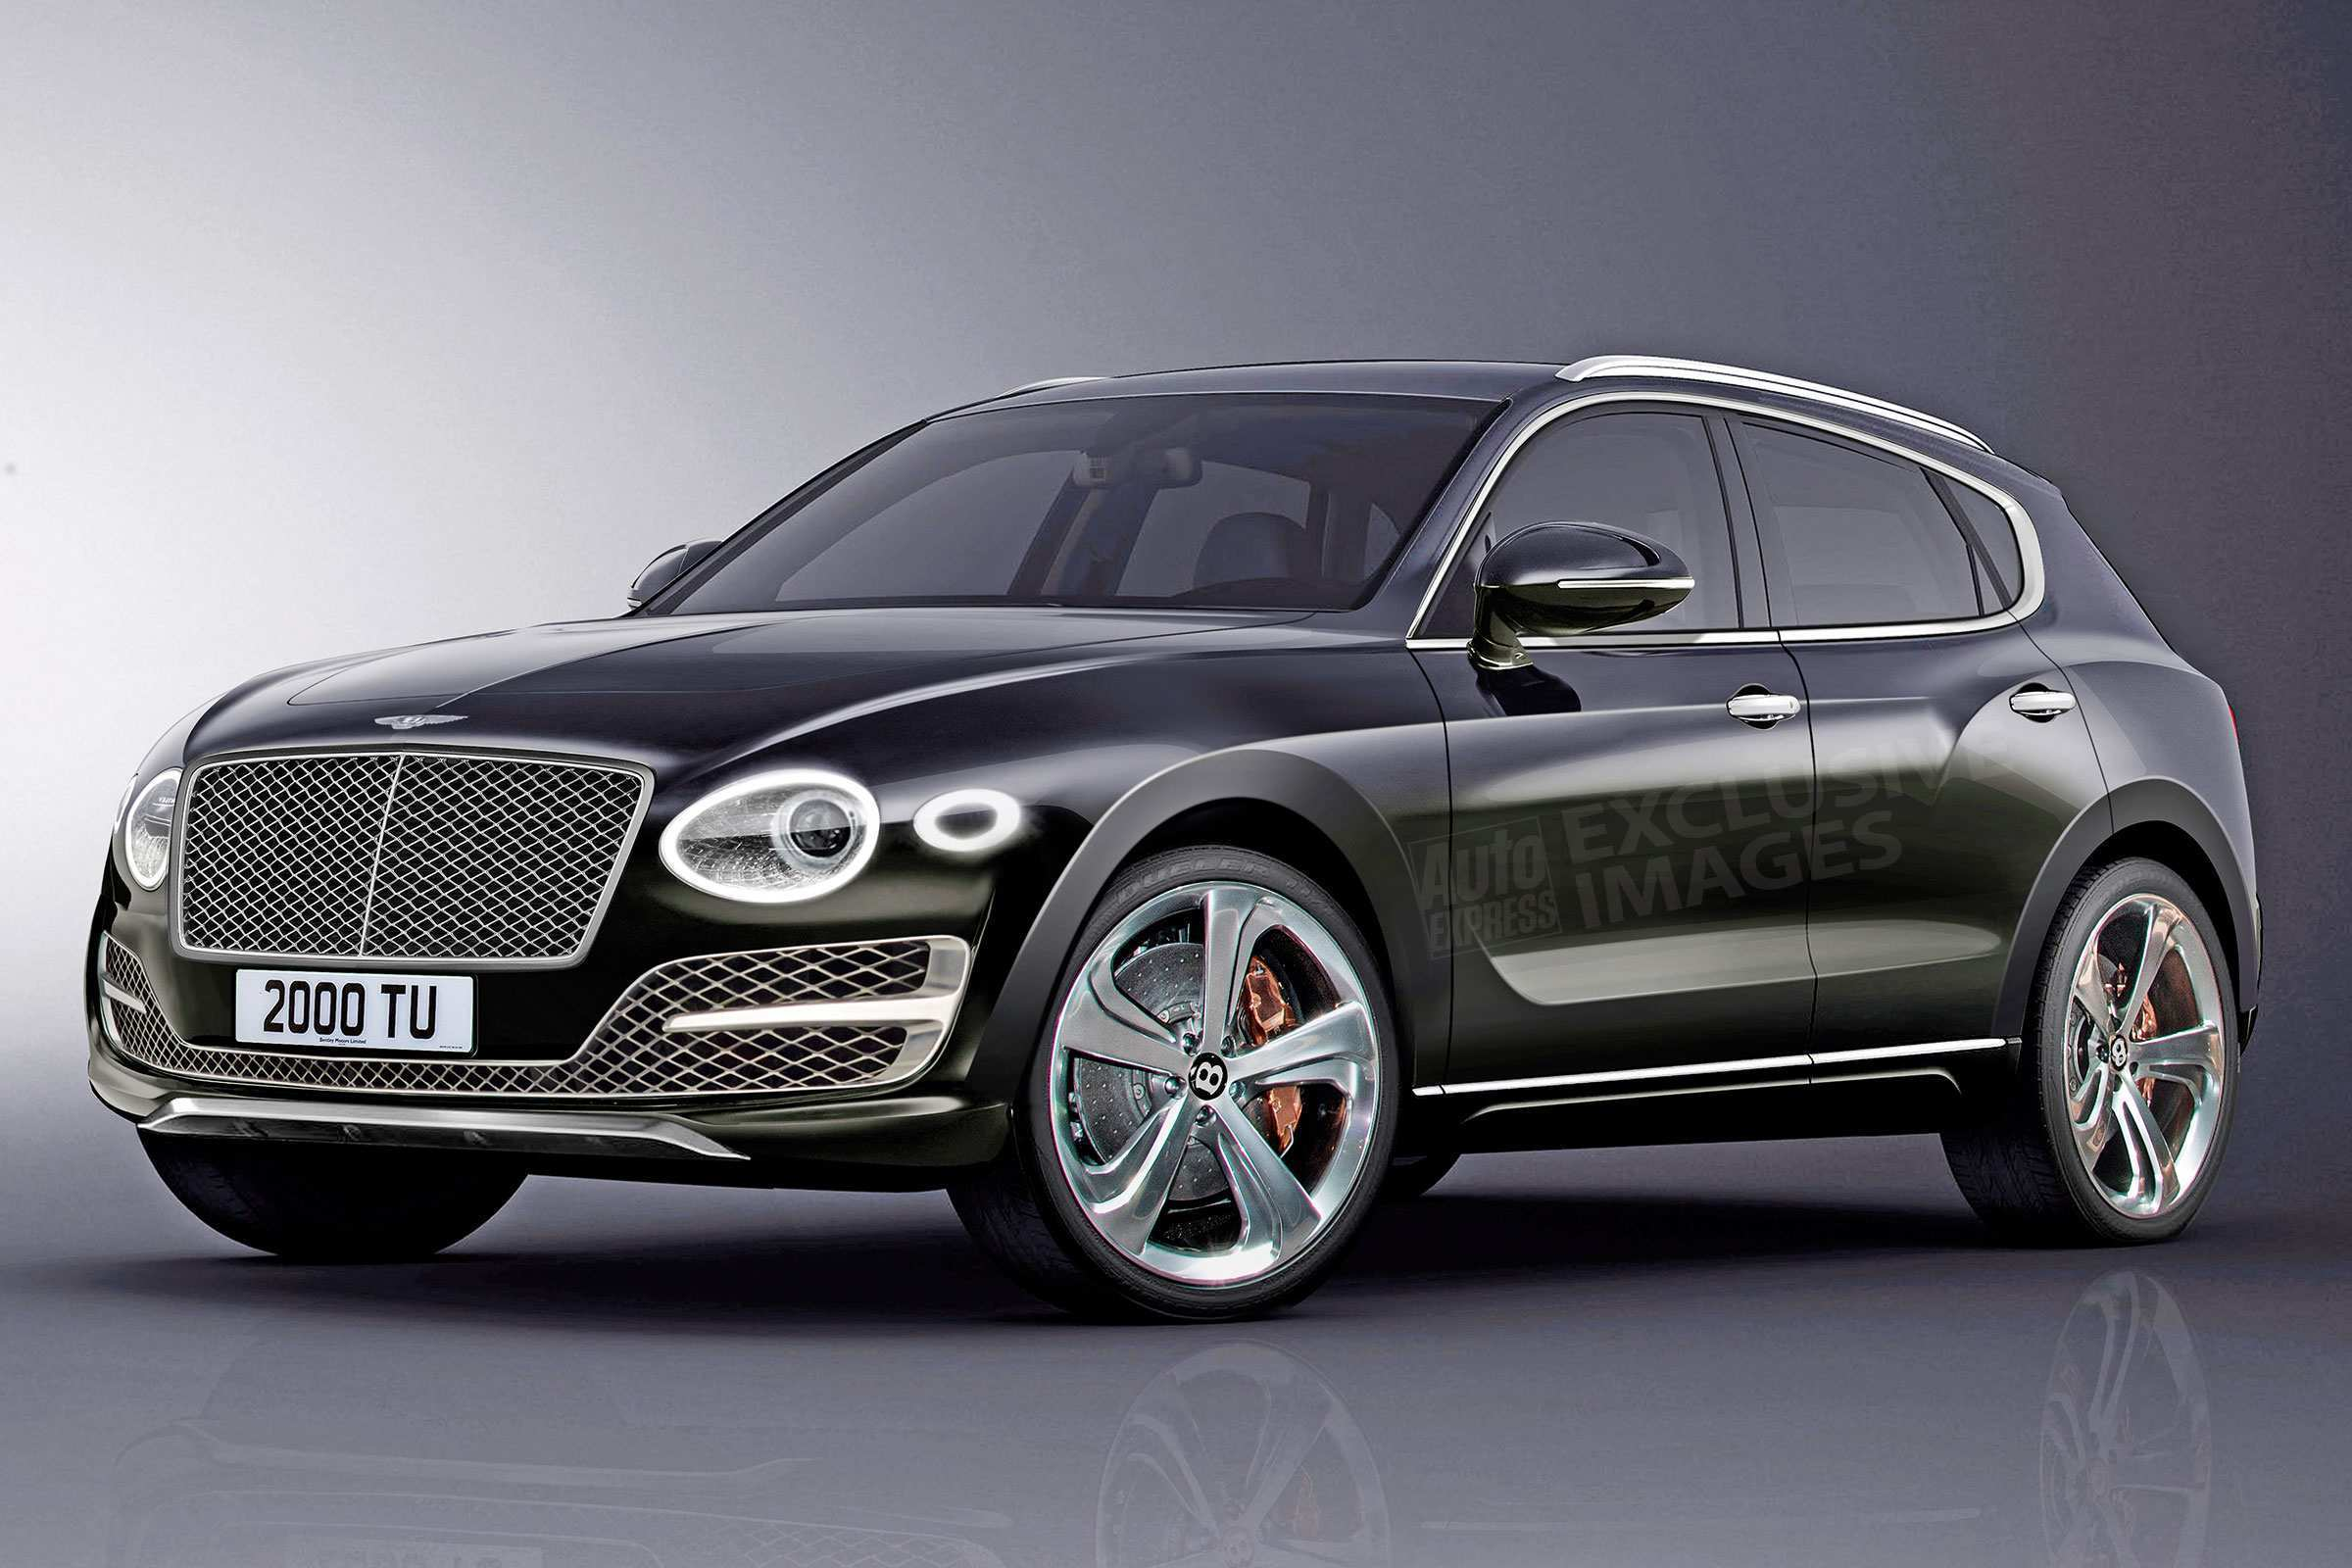 54 All New 2020 Bentley Suv Overview